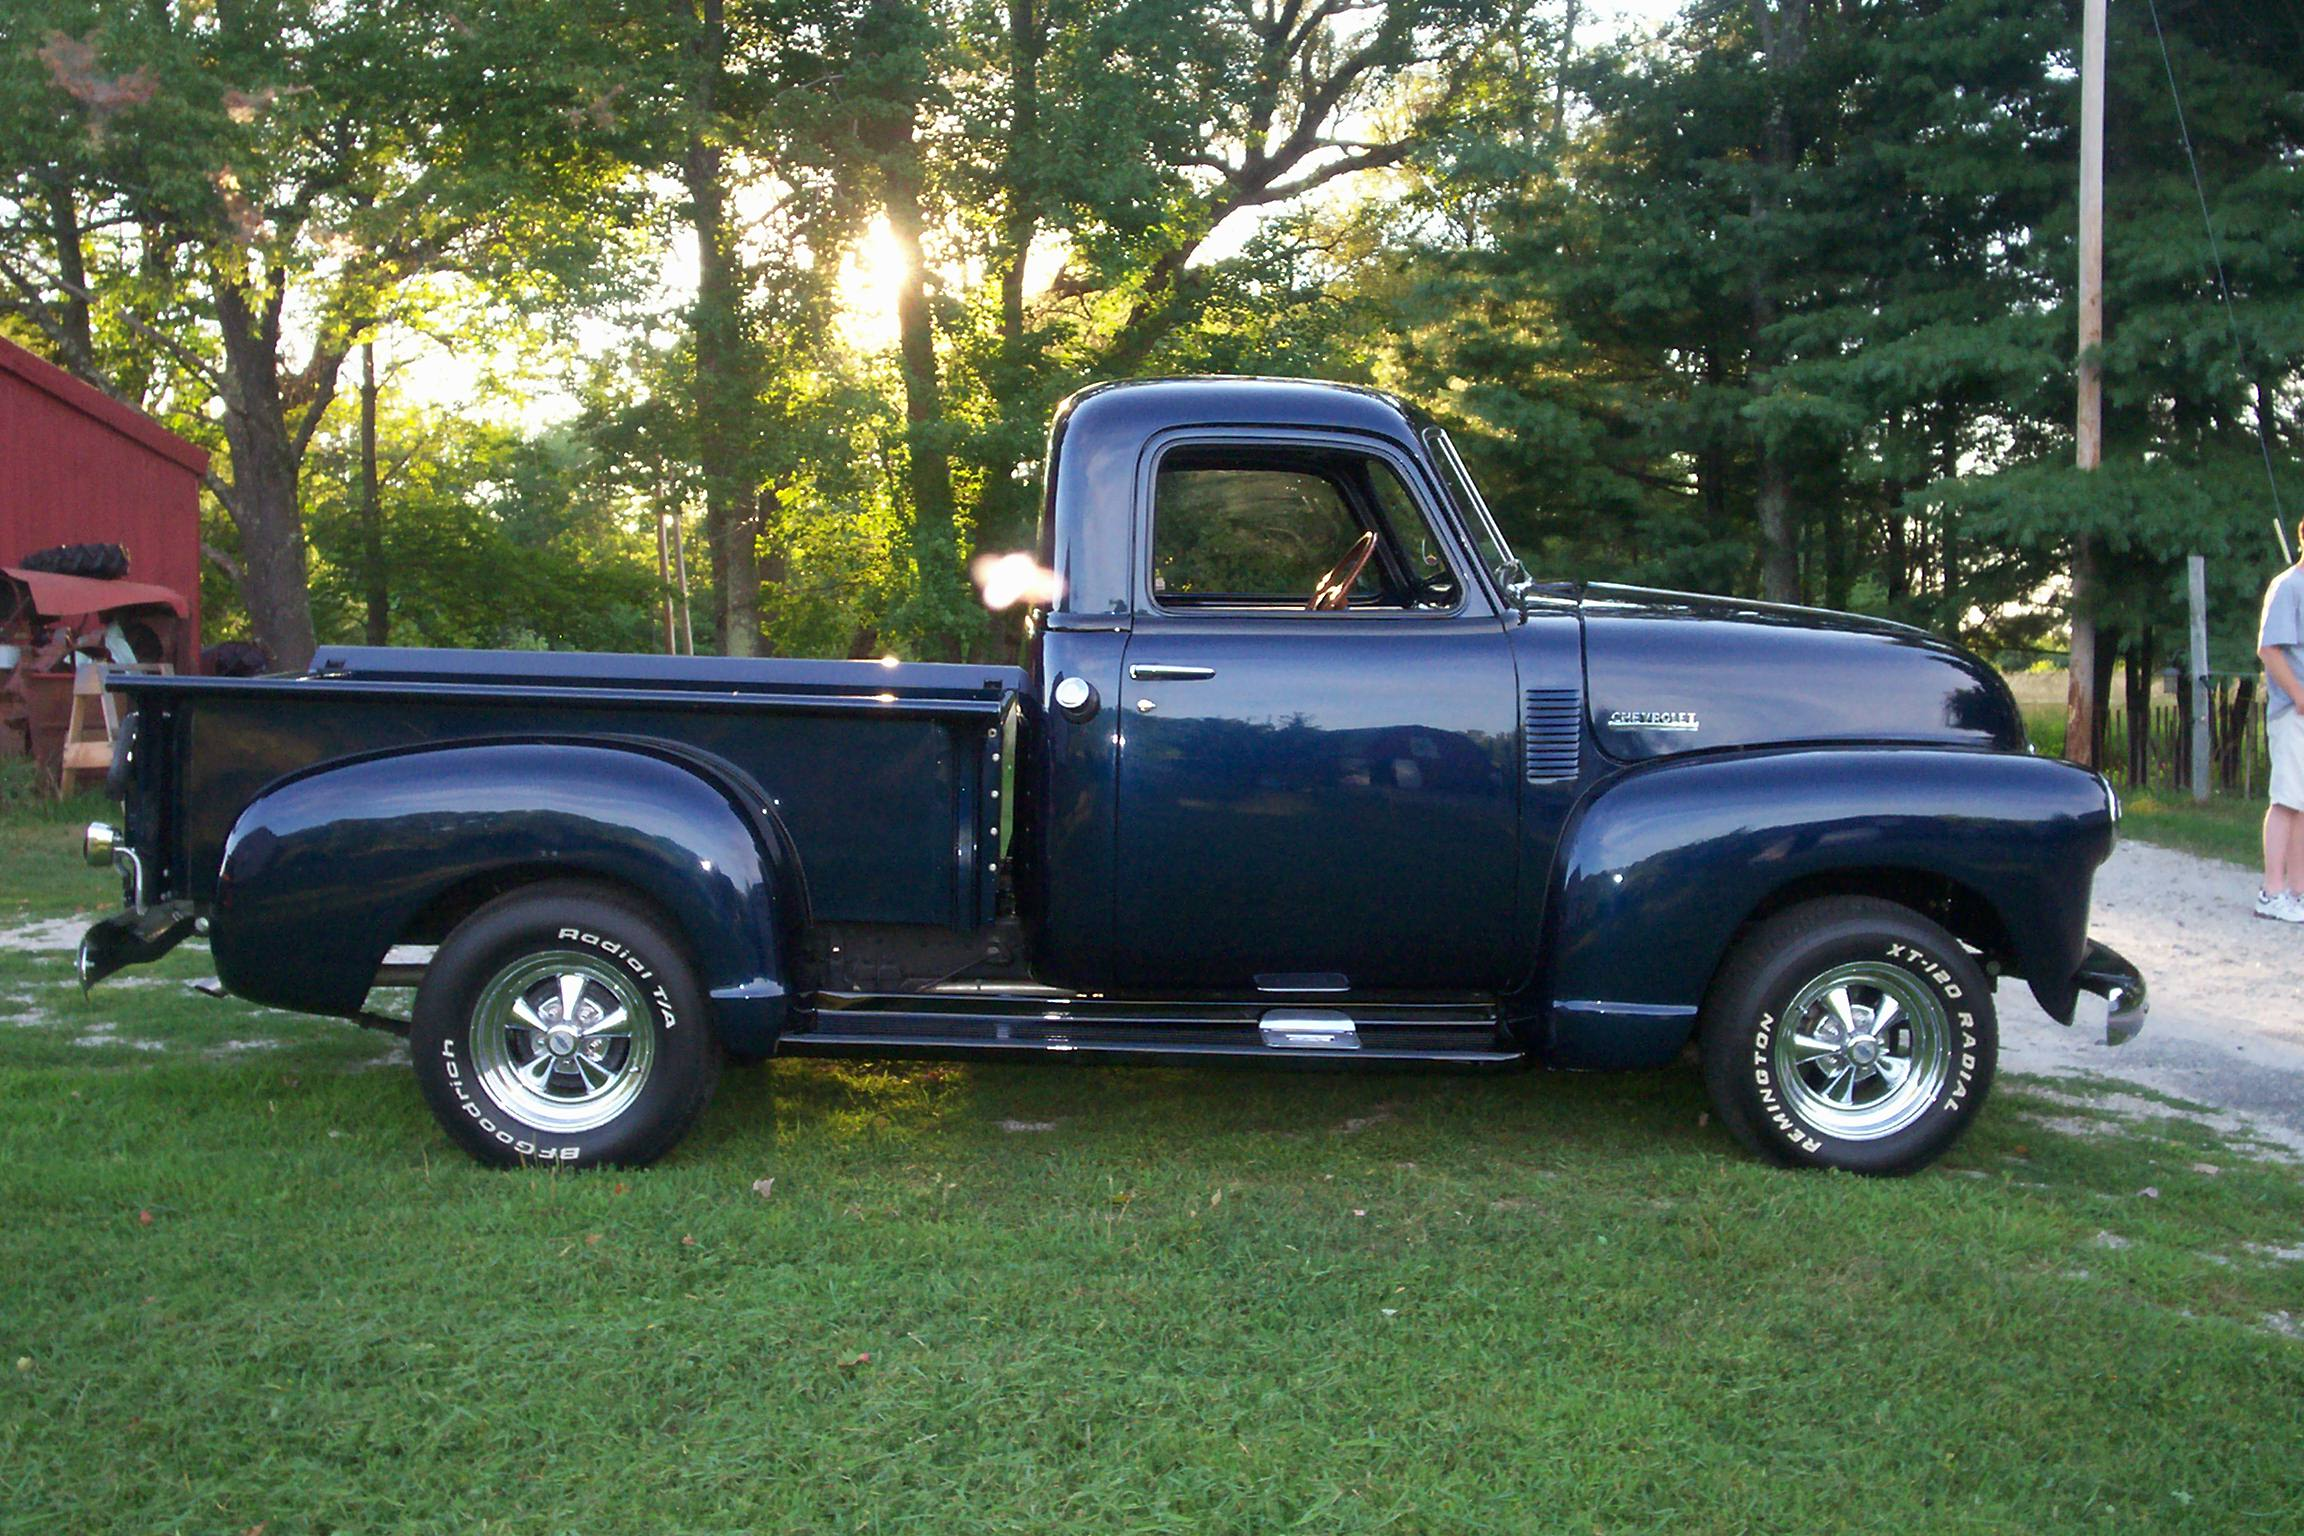 1950 Chevy Truck Completed Restoraton Blue With Belting Painted Black Maine Mustang